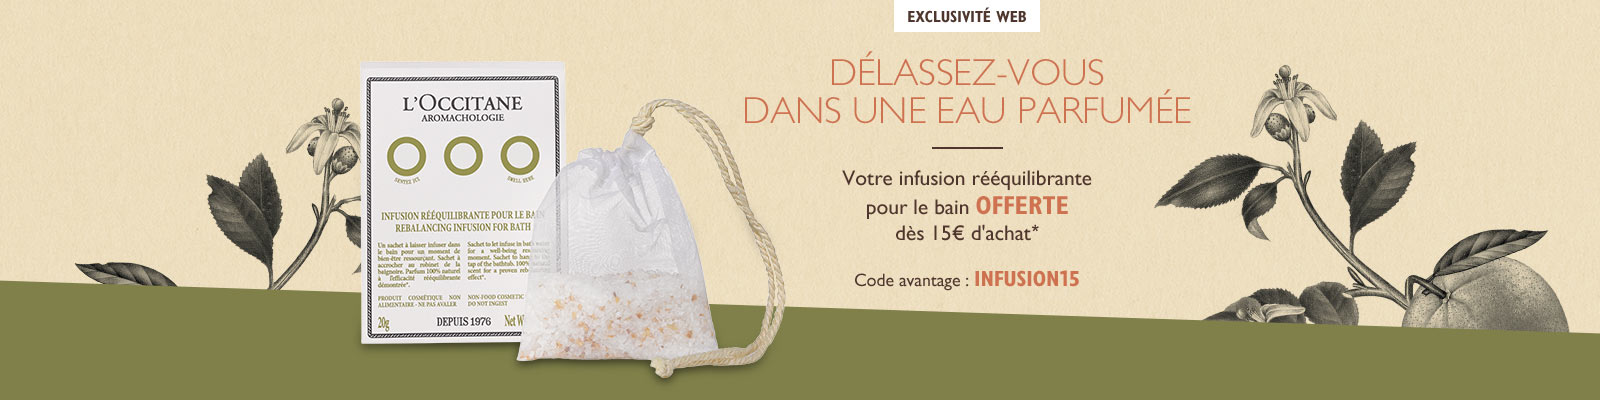 Offre Infusions